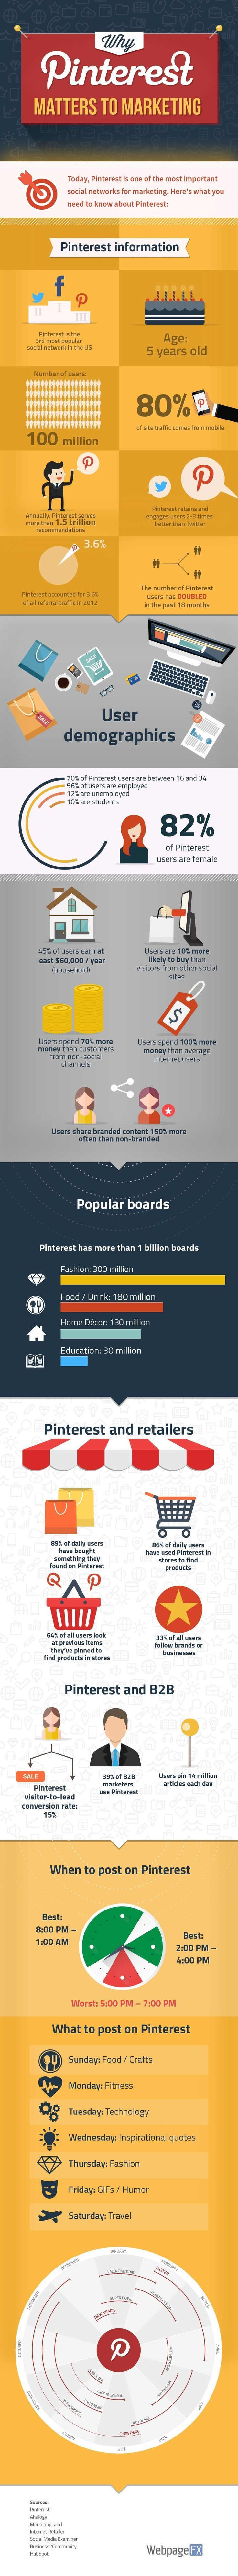 Why Marketing Teams Need to Use Pinterest [Infographic]